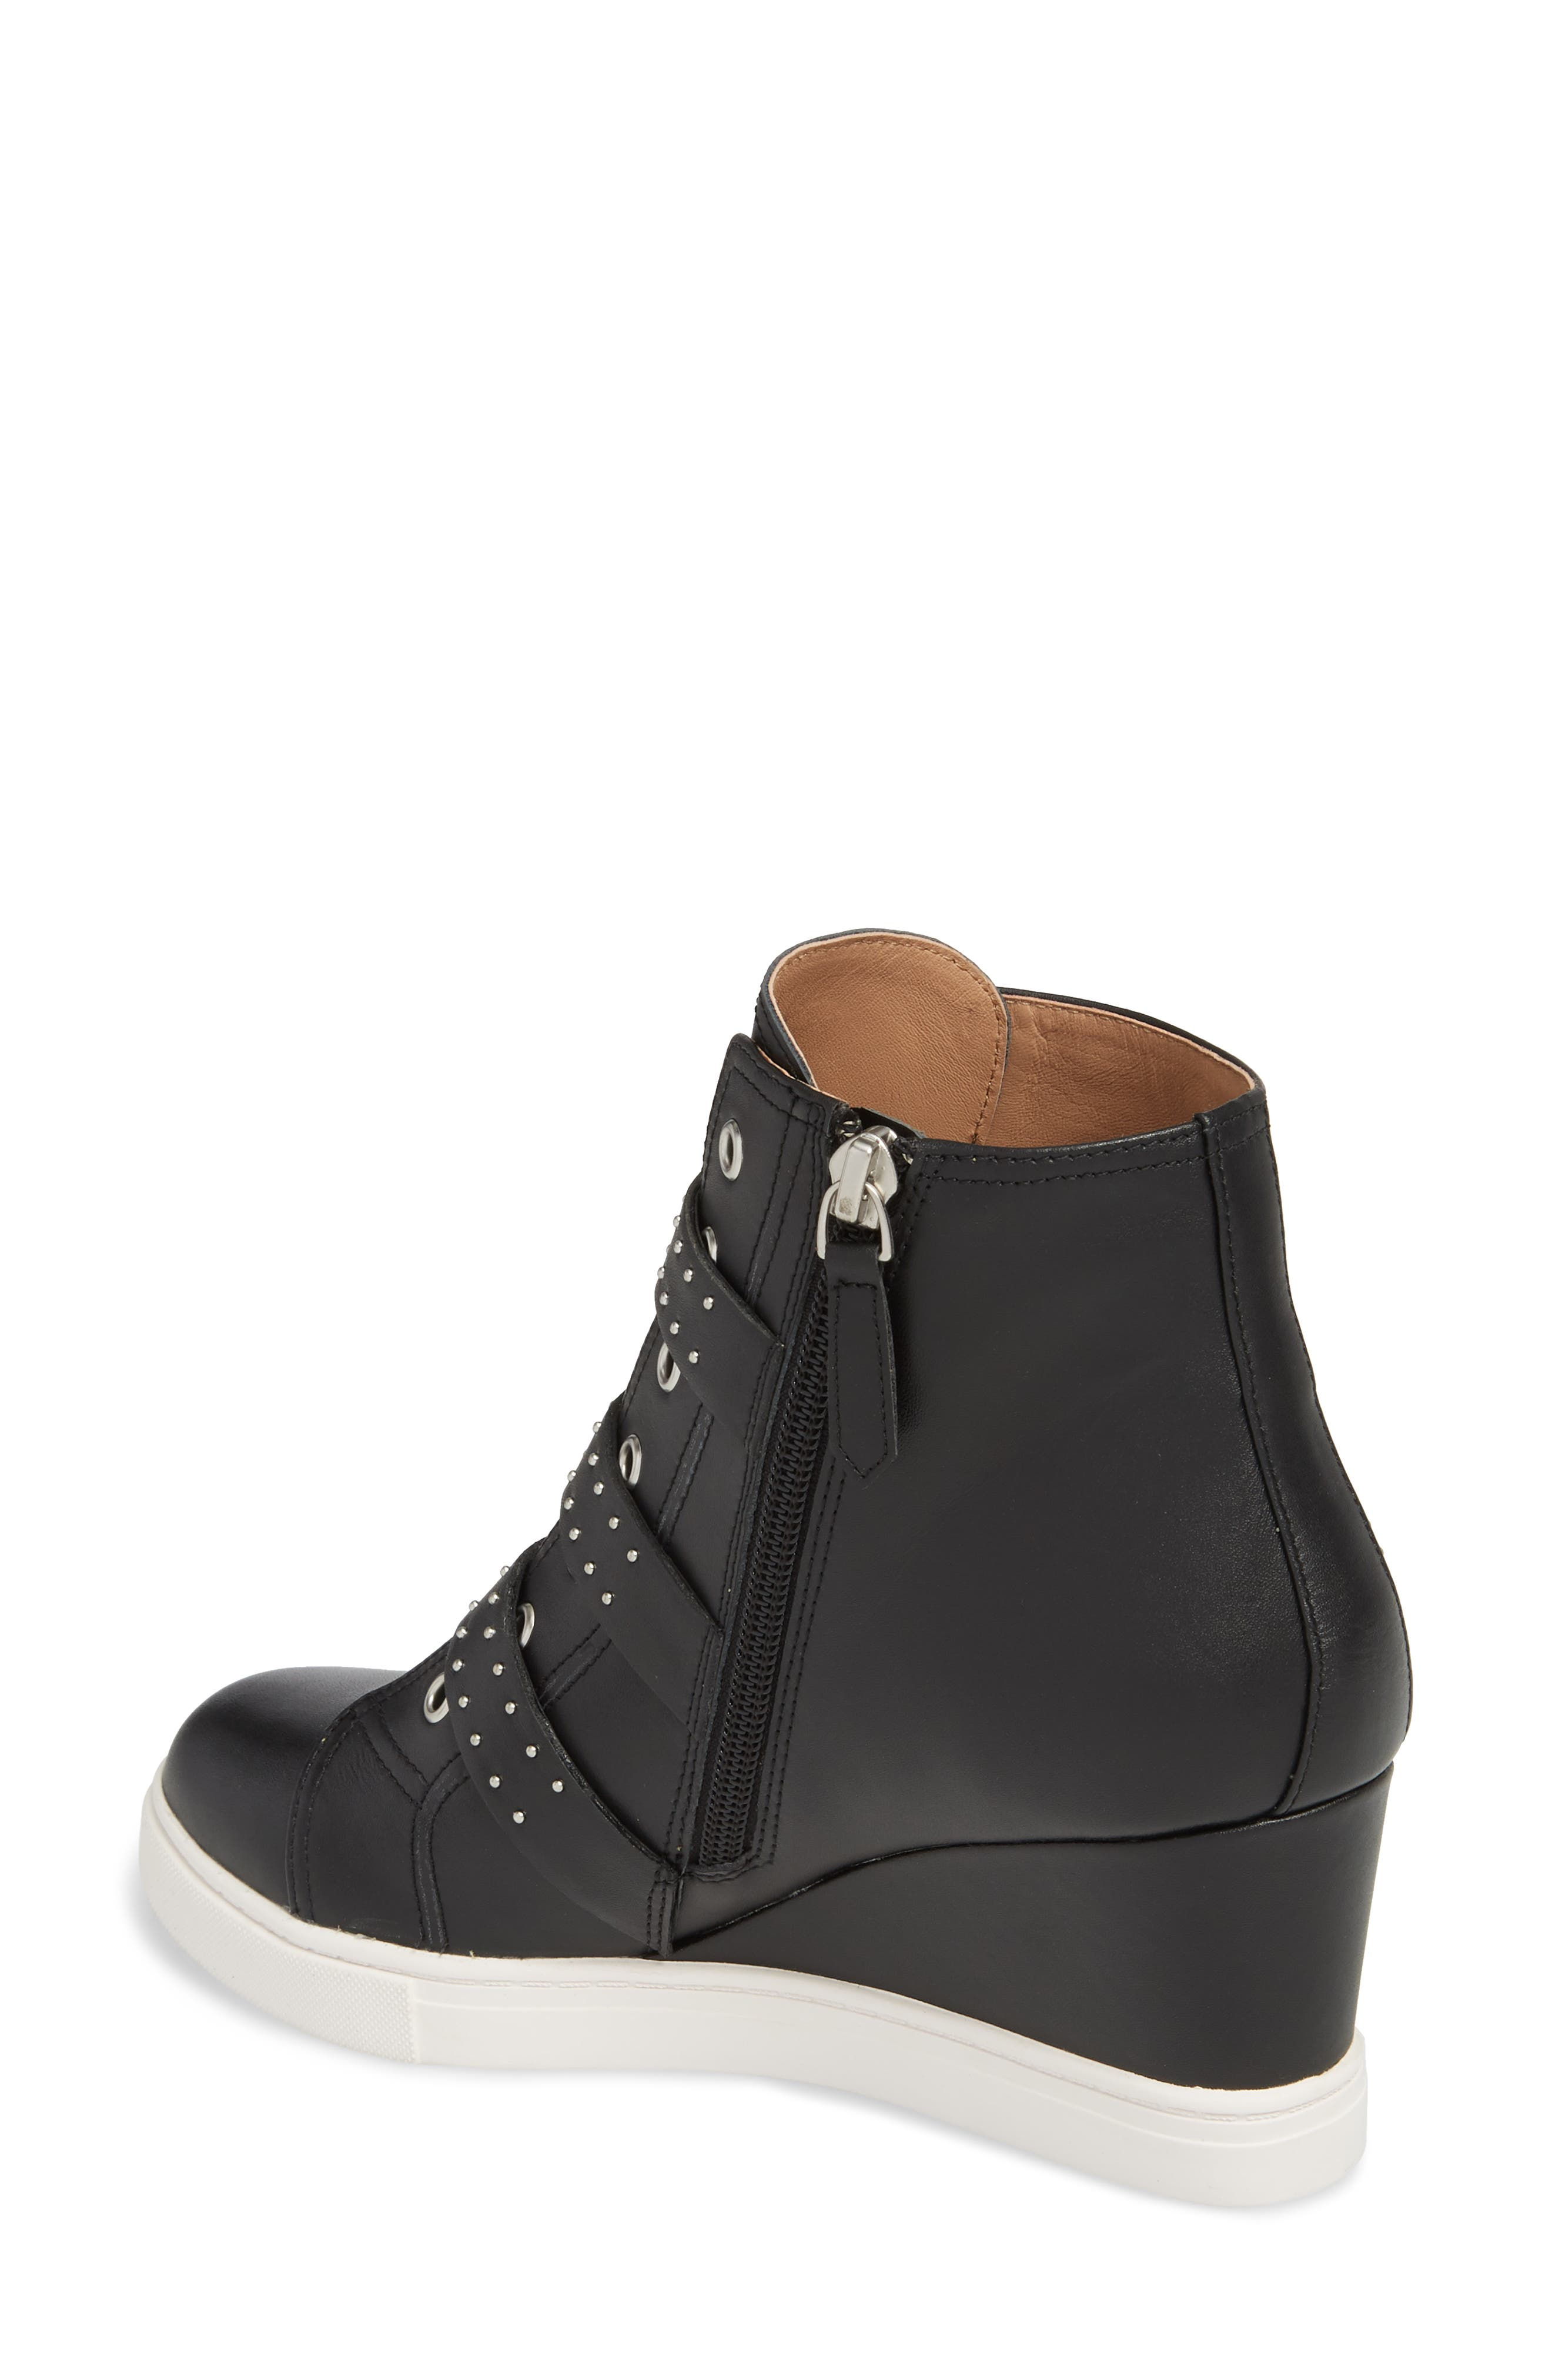 LINEA PAOLO, Fawn Wedge Sneaker, Alternate thumbnail 2, color, BLACK LEATHER